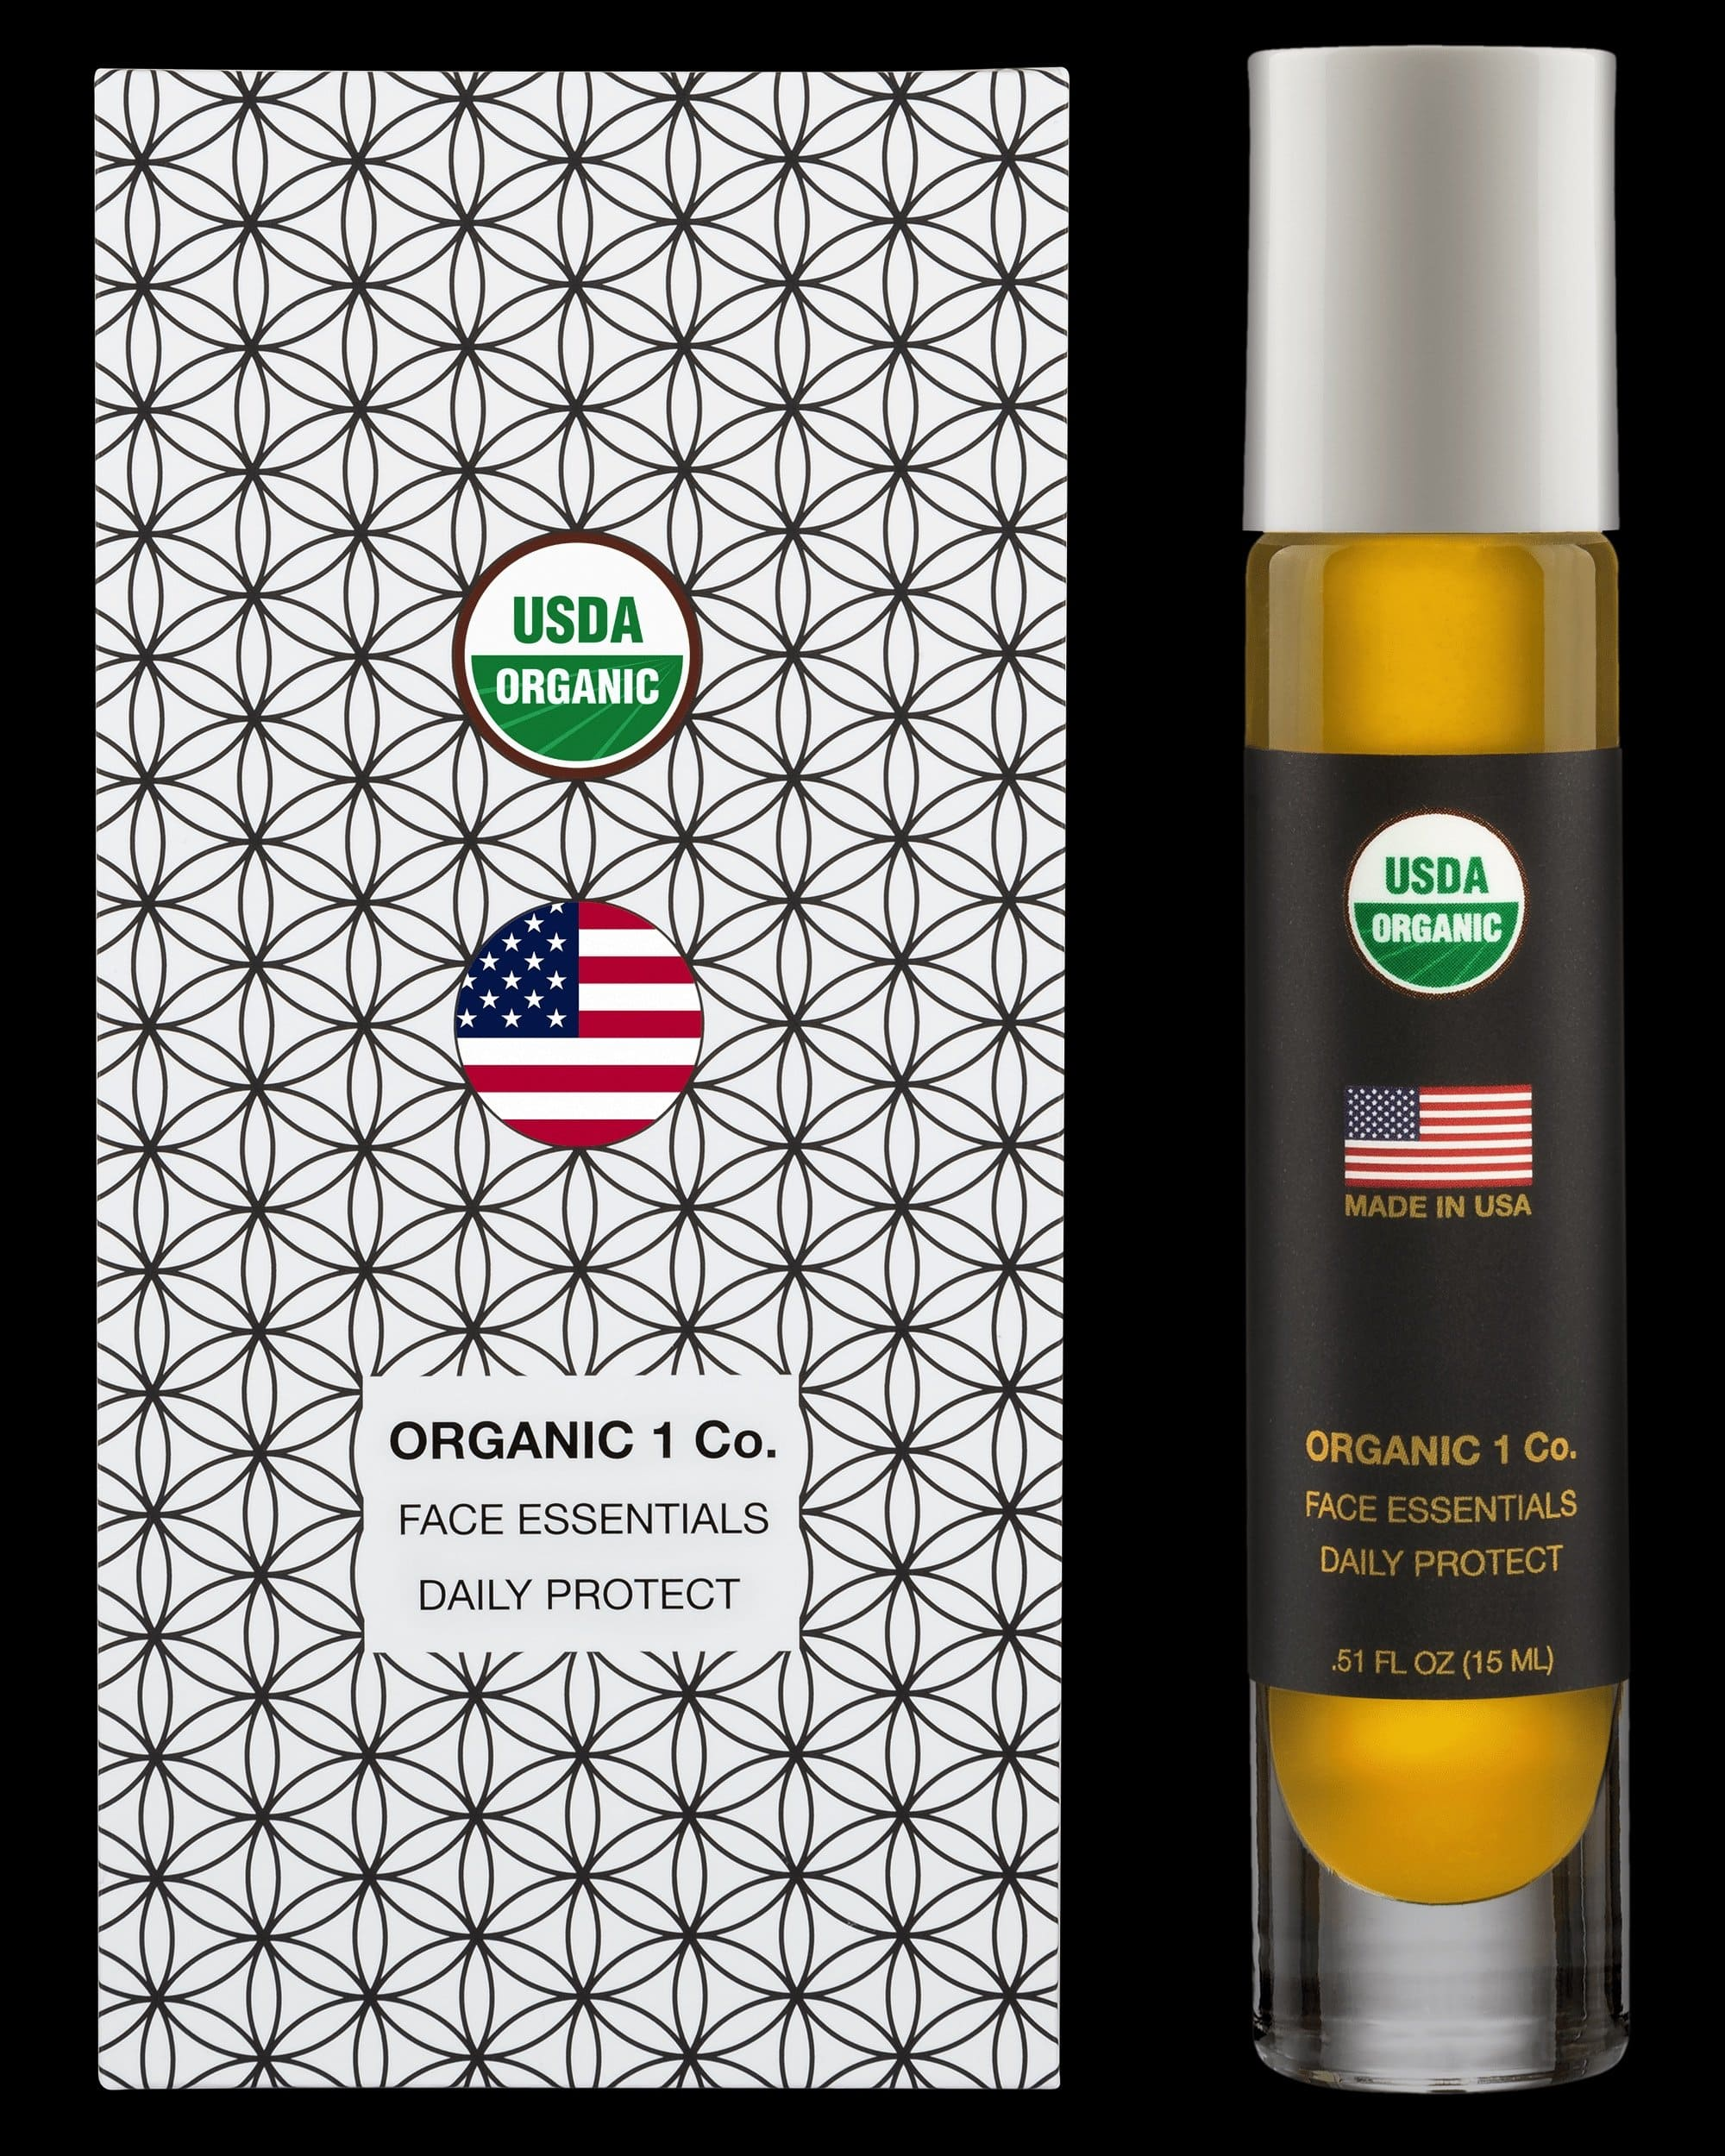 Face Essentials Daily Protect moisturizer front of box and bottle. USDA Organic anti aging Face Oil